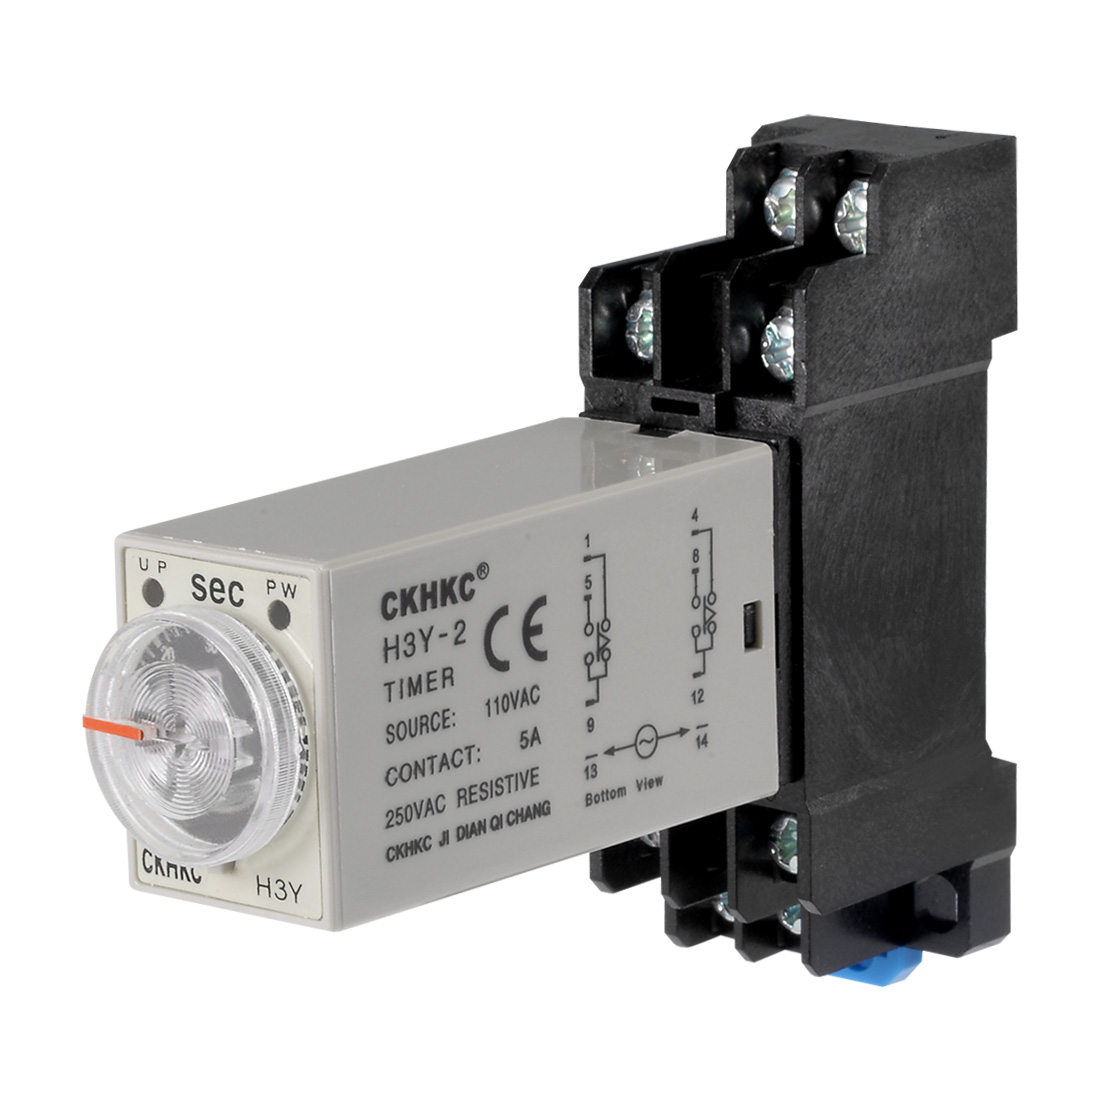 AC110V 60S 8 Terminals Range Adjustable Delay Timer Time Relay H3Y-2 w base